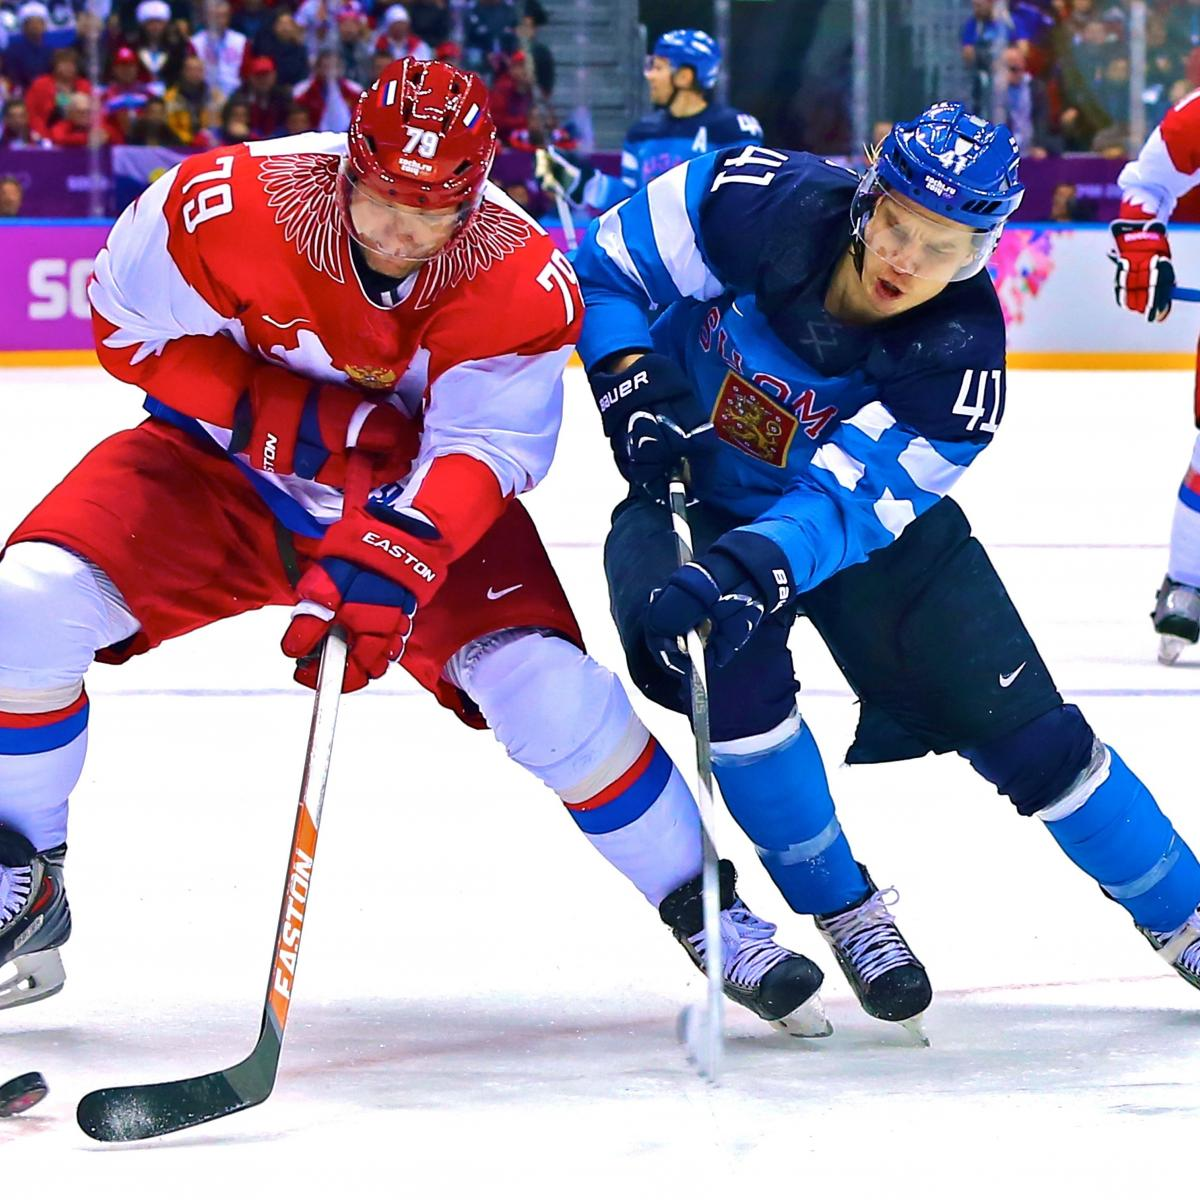 27b188b1cd2 Russia vs. Finland Olympic Ice Hockey  Live Score and Analysis ...